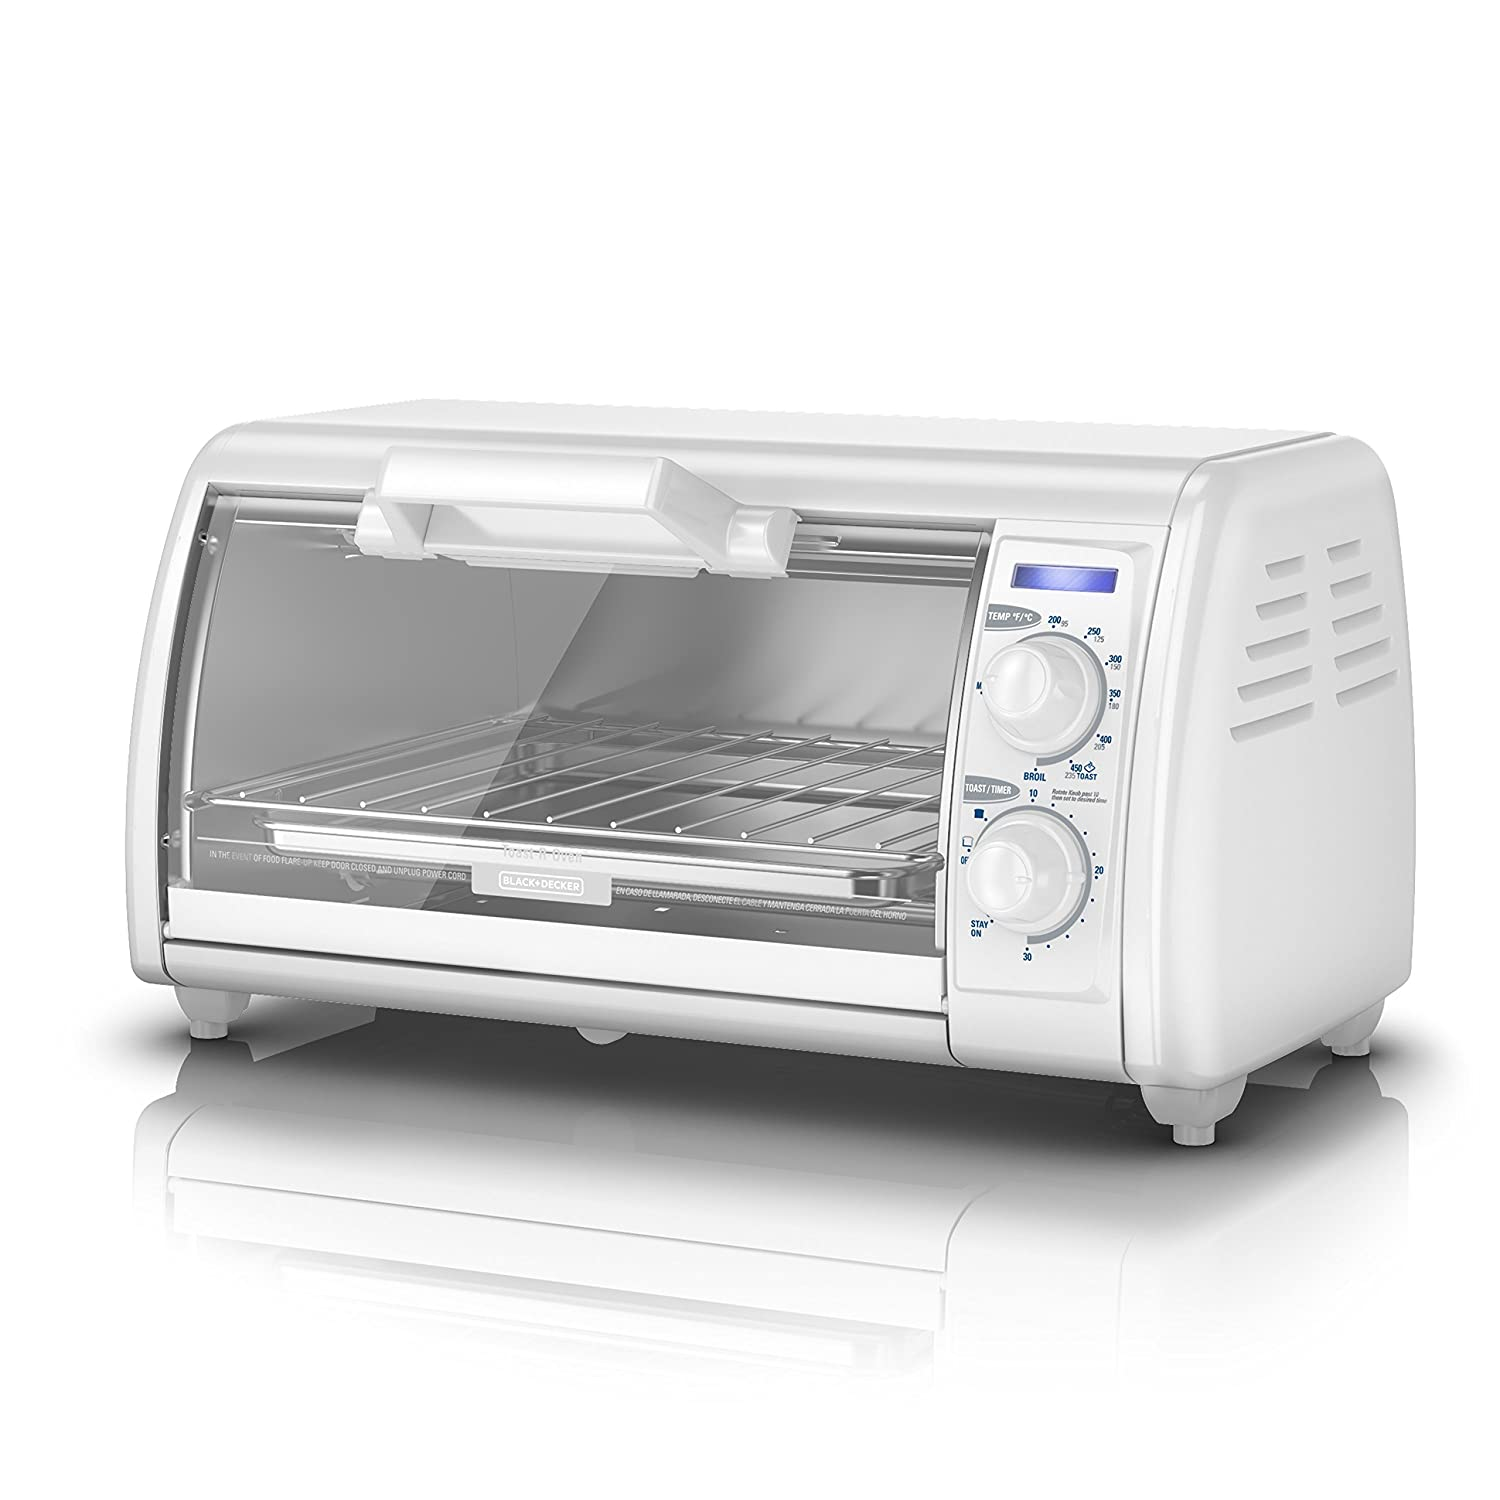 Black & Decker TRO420 Toaster Oven